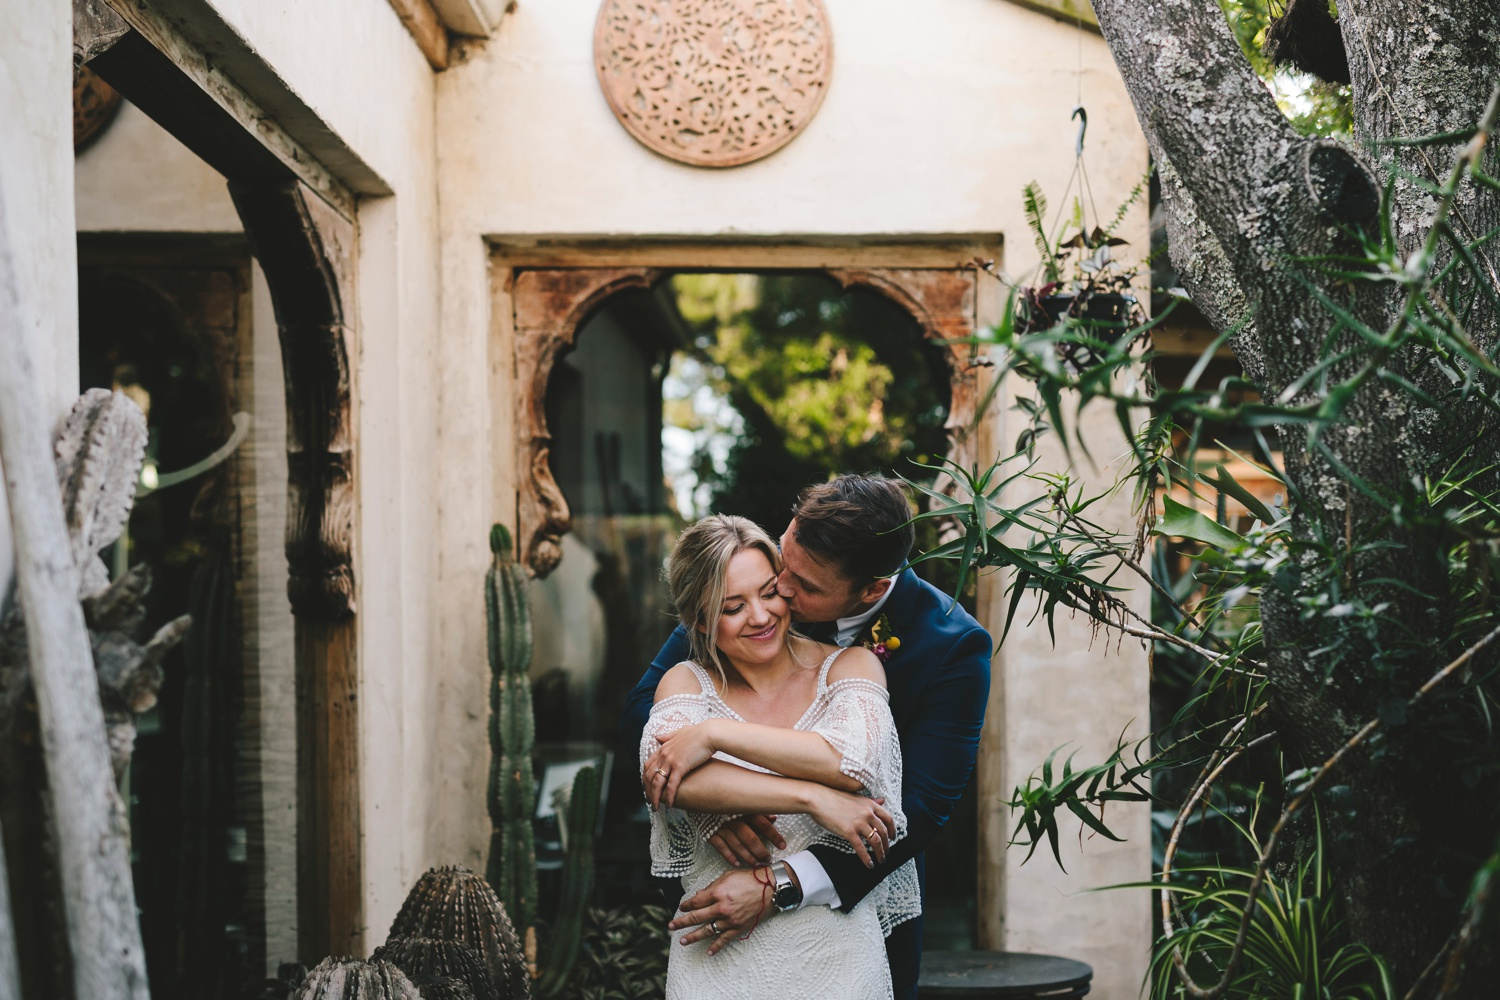 charlie_ray_photography_runaway_romance_elopement_emily_moon_plett_simple_boho_wedding_south_africa_bohemium_0086.jpg